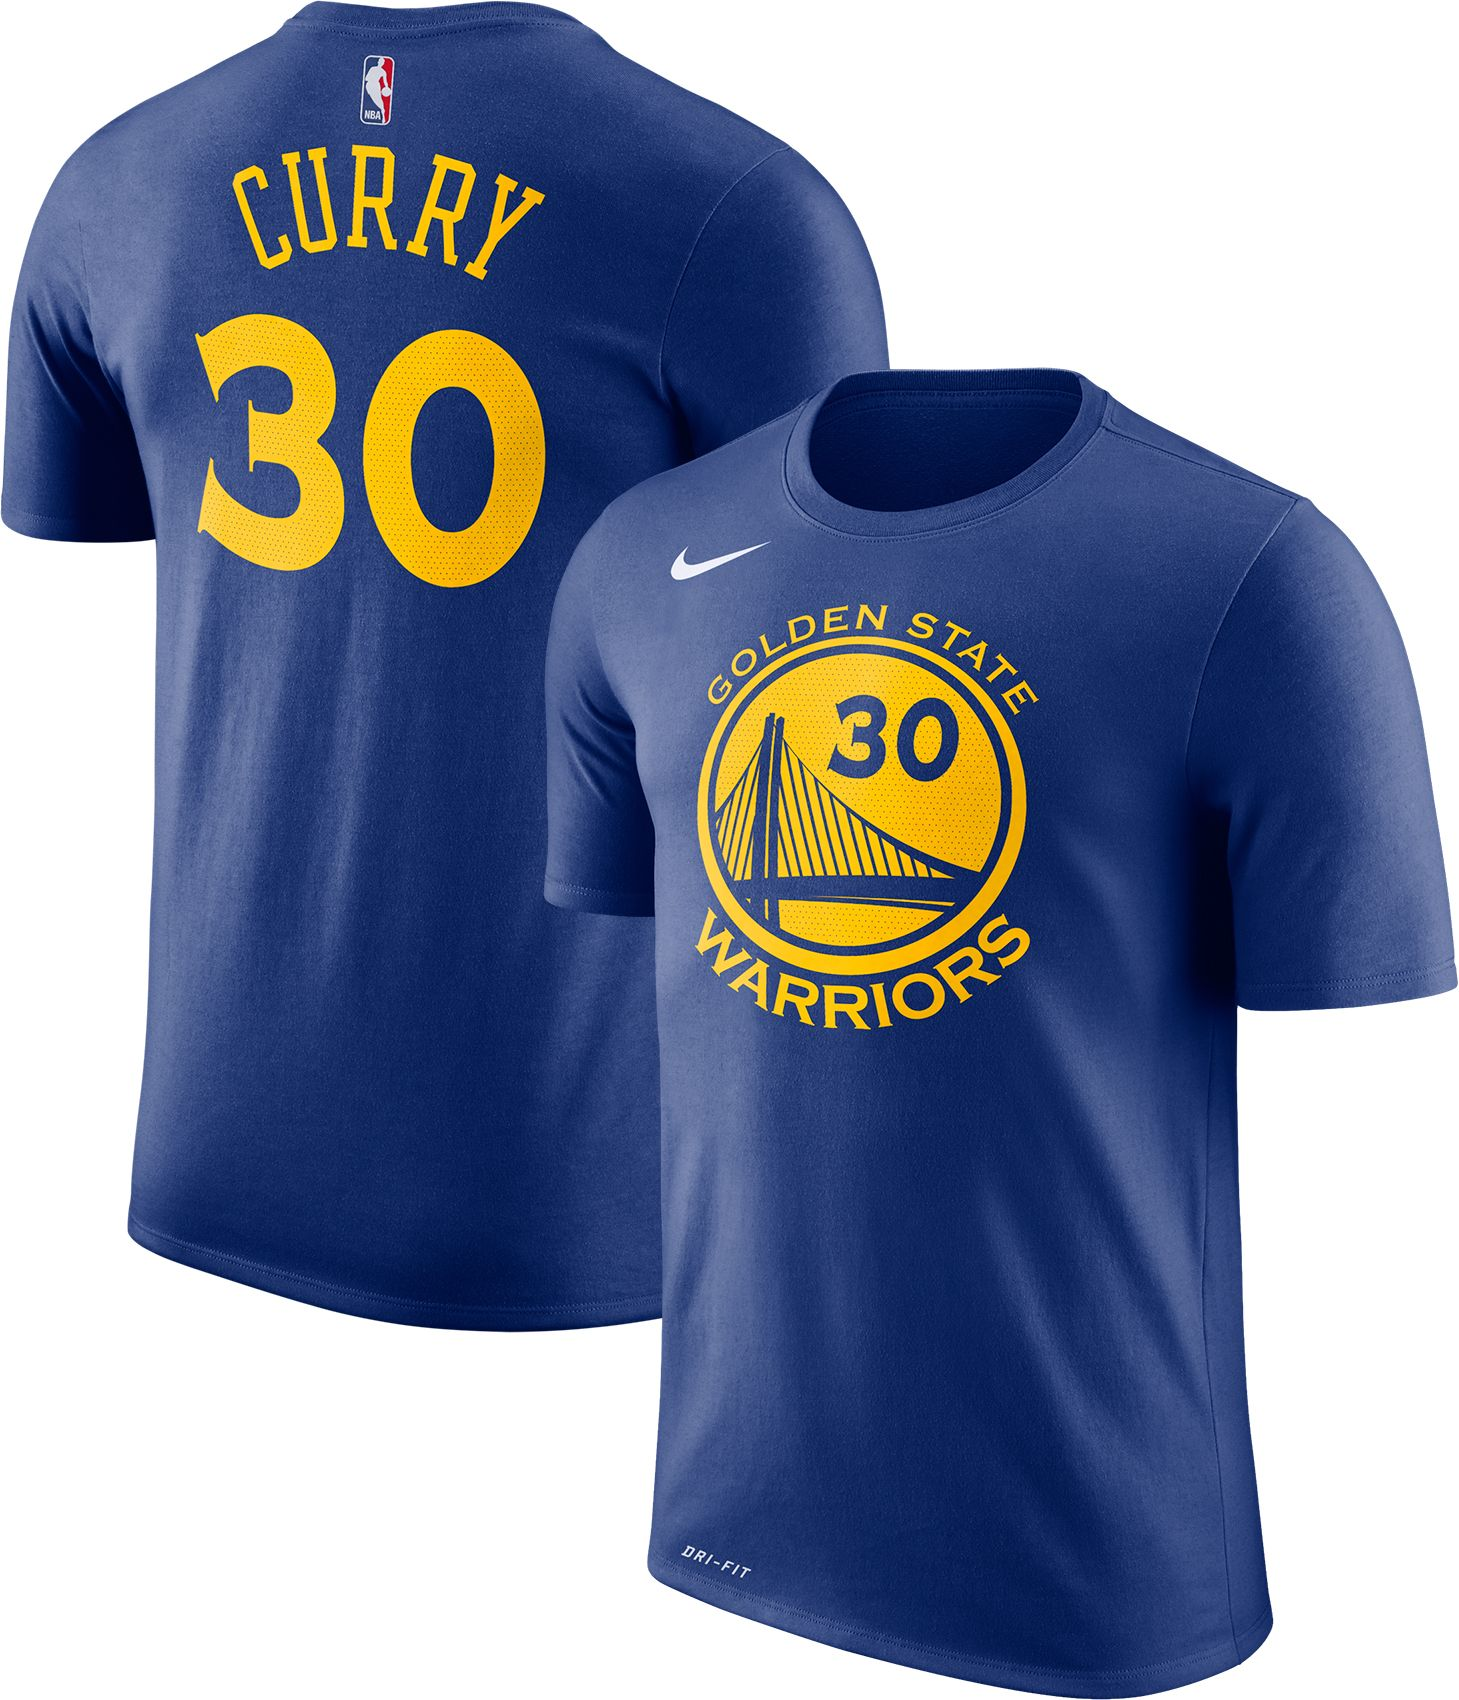 Shirt Curry Tee Steph Steph Steph Shirt Tee Curry Curry|Tags Tours Dome